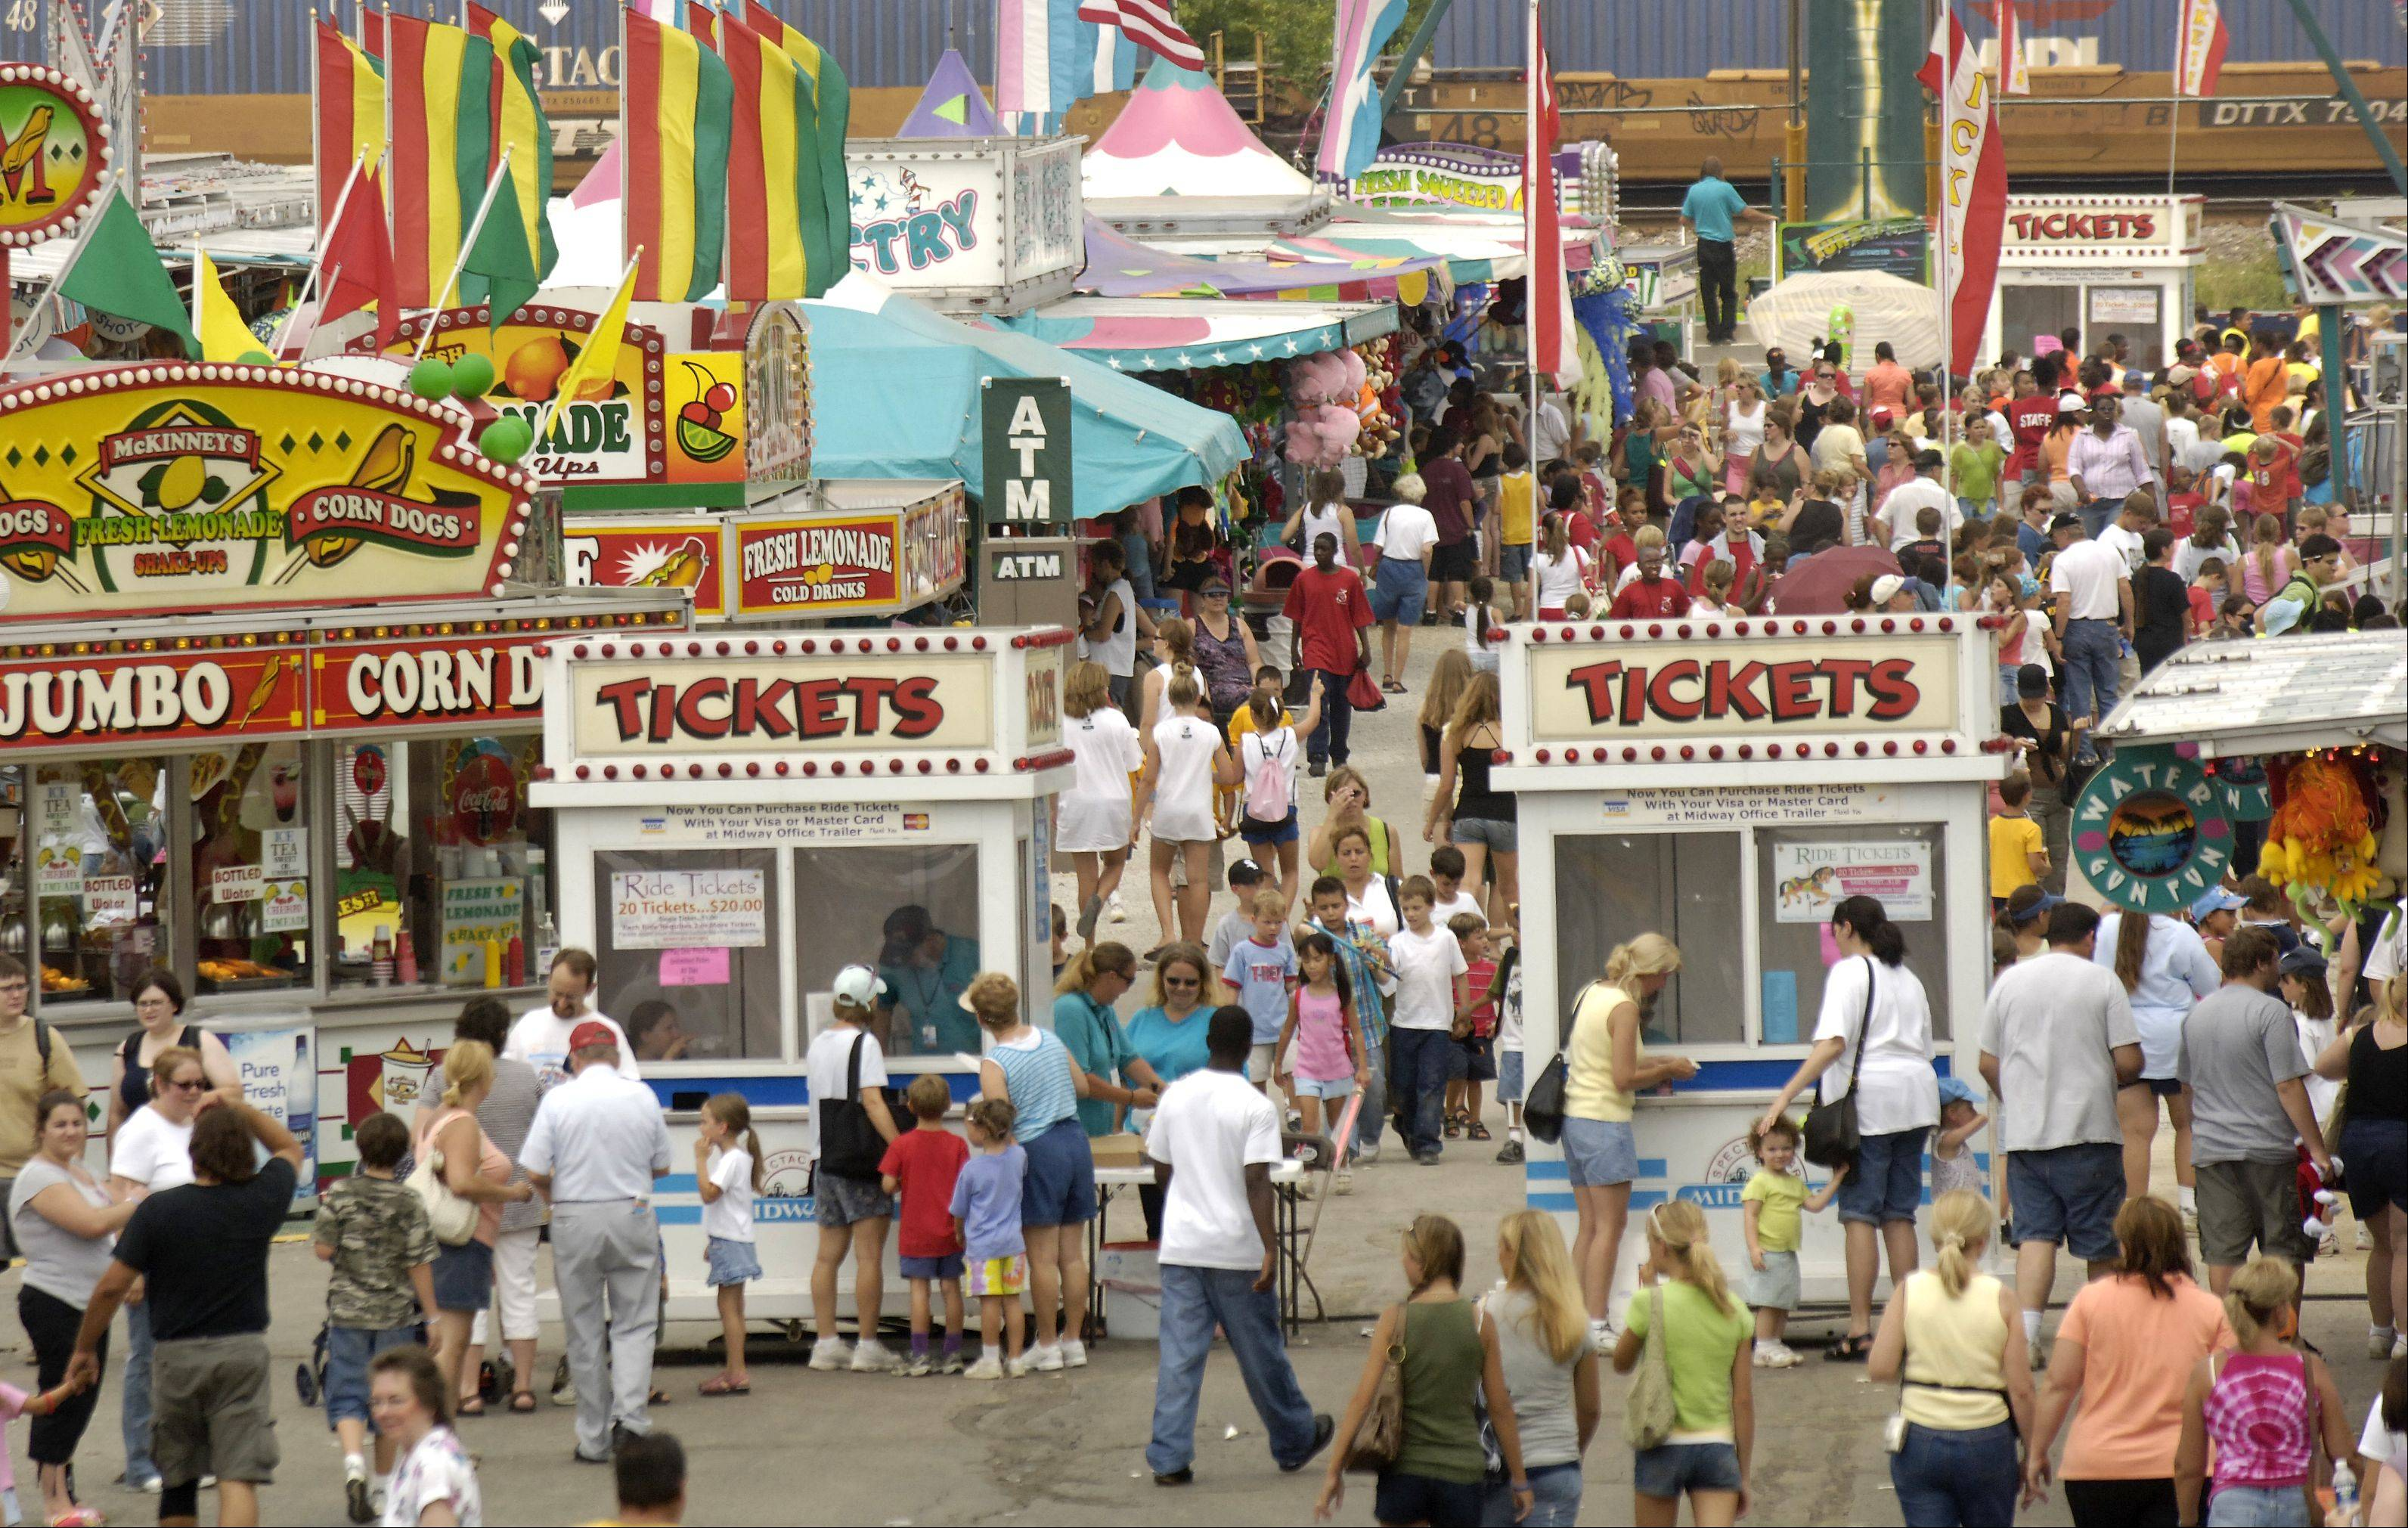 Concerns about falling attendance and revenues at the DuPage County Fair could lead to some changes in oversight and possibly a new location.